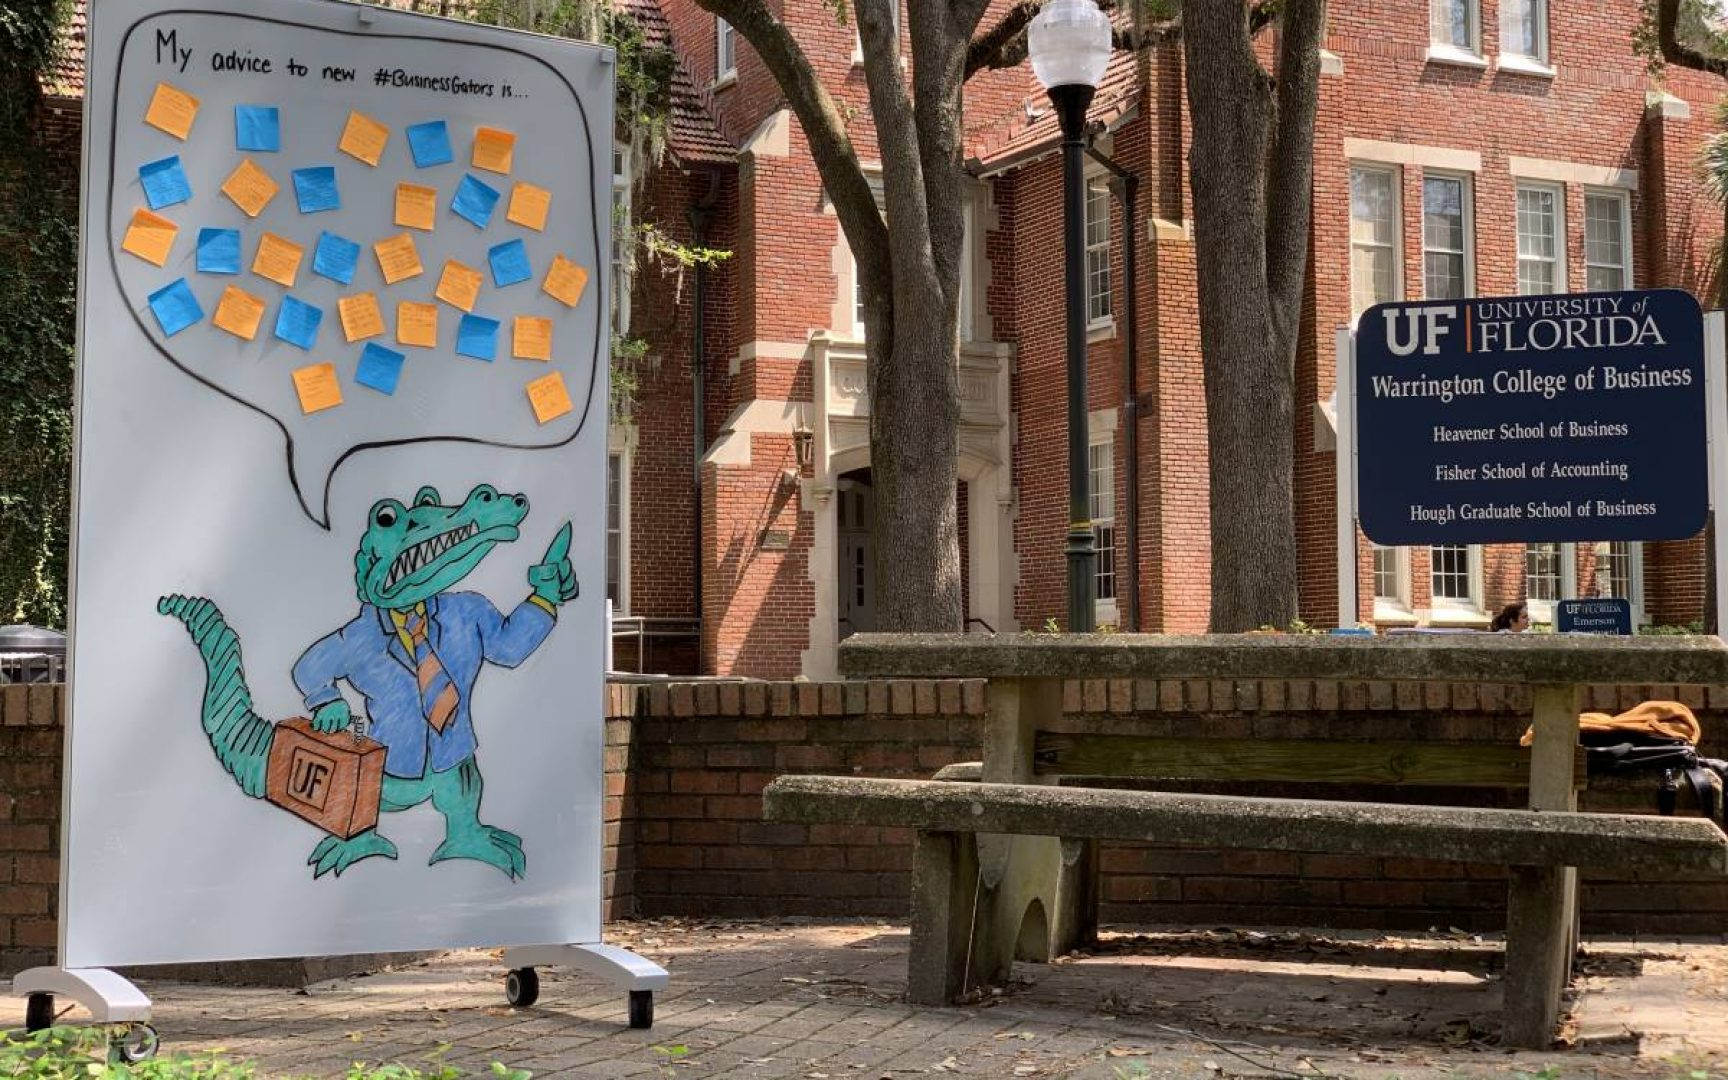 Whiteboard with drawing of a Gator with a speech bubble above his head with advice. The whiteboard is outside in a courtyard next to a bench in front of a sign that says Warrington College of Business